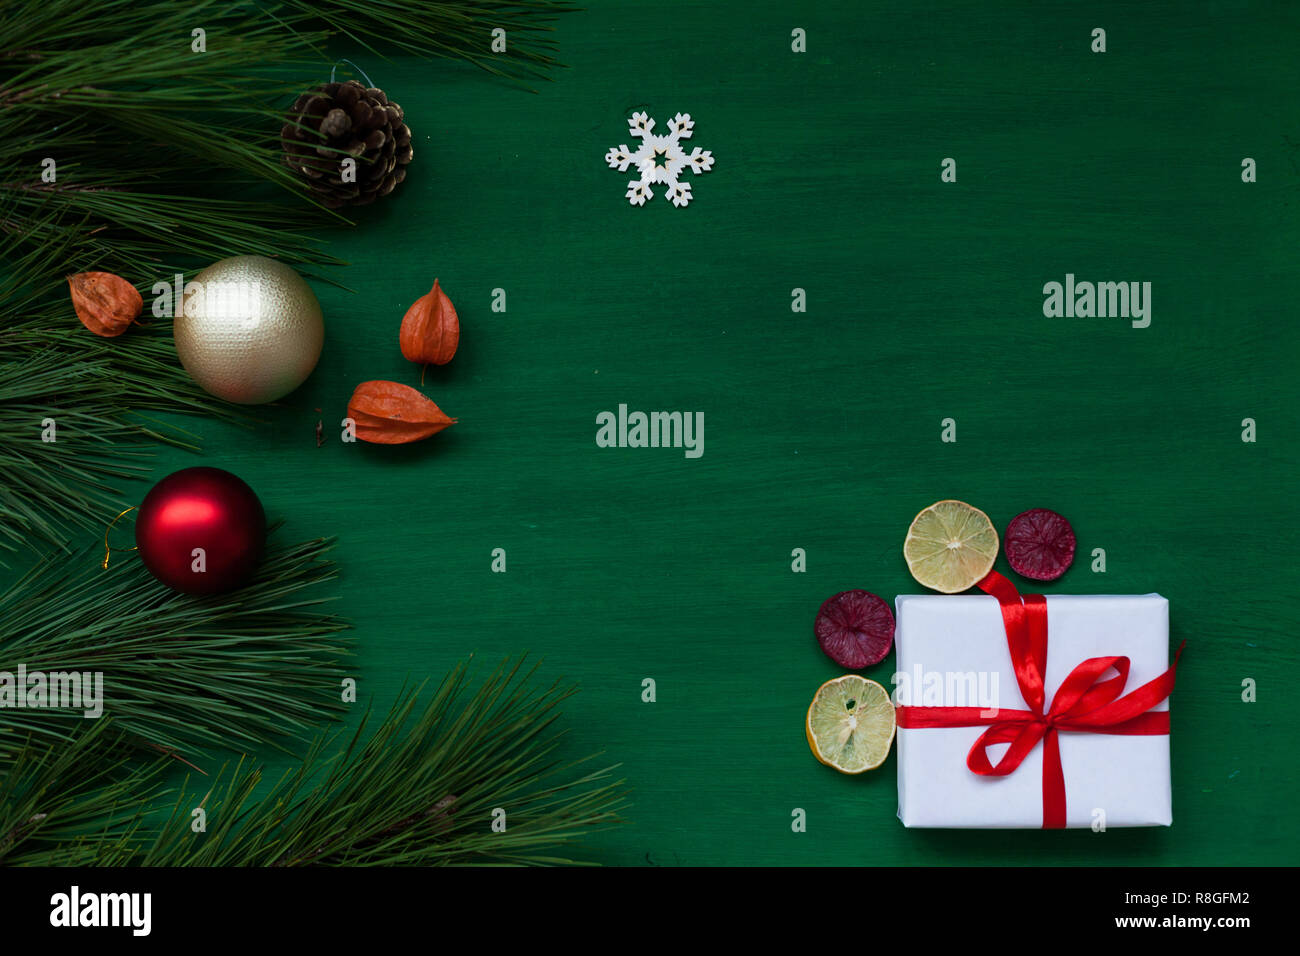 Green Christmas new year tree background gifts holiday - Stock Image